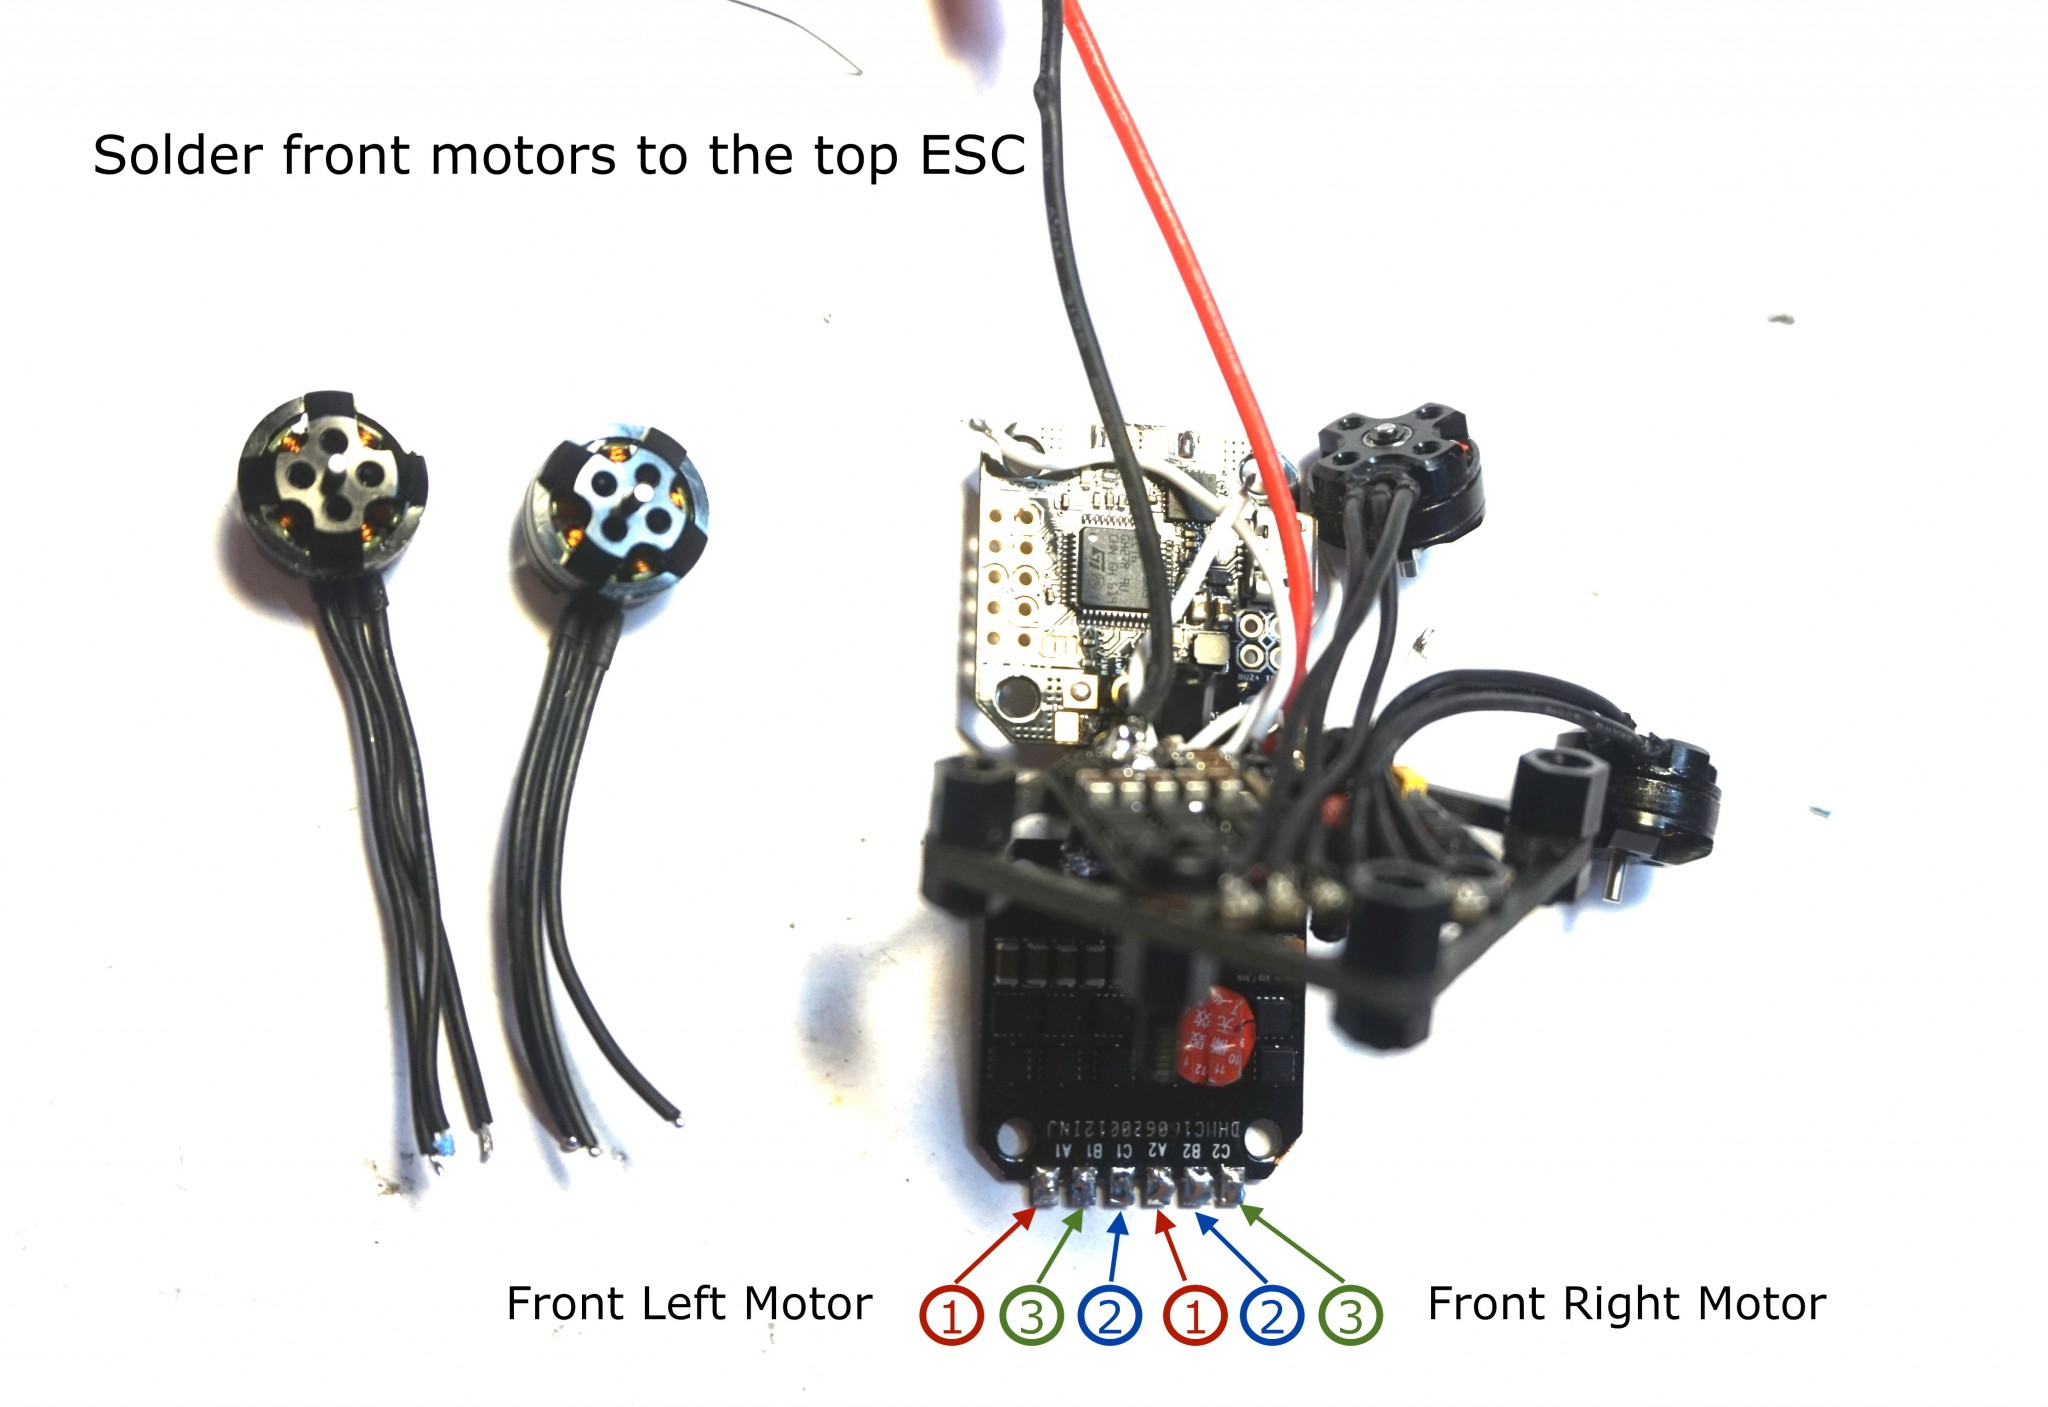 top-esc-motor-layout Quadcopter Wiring Diagram Cc D on